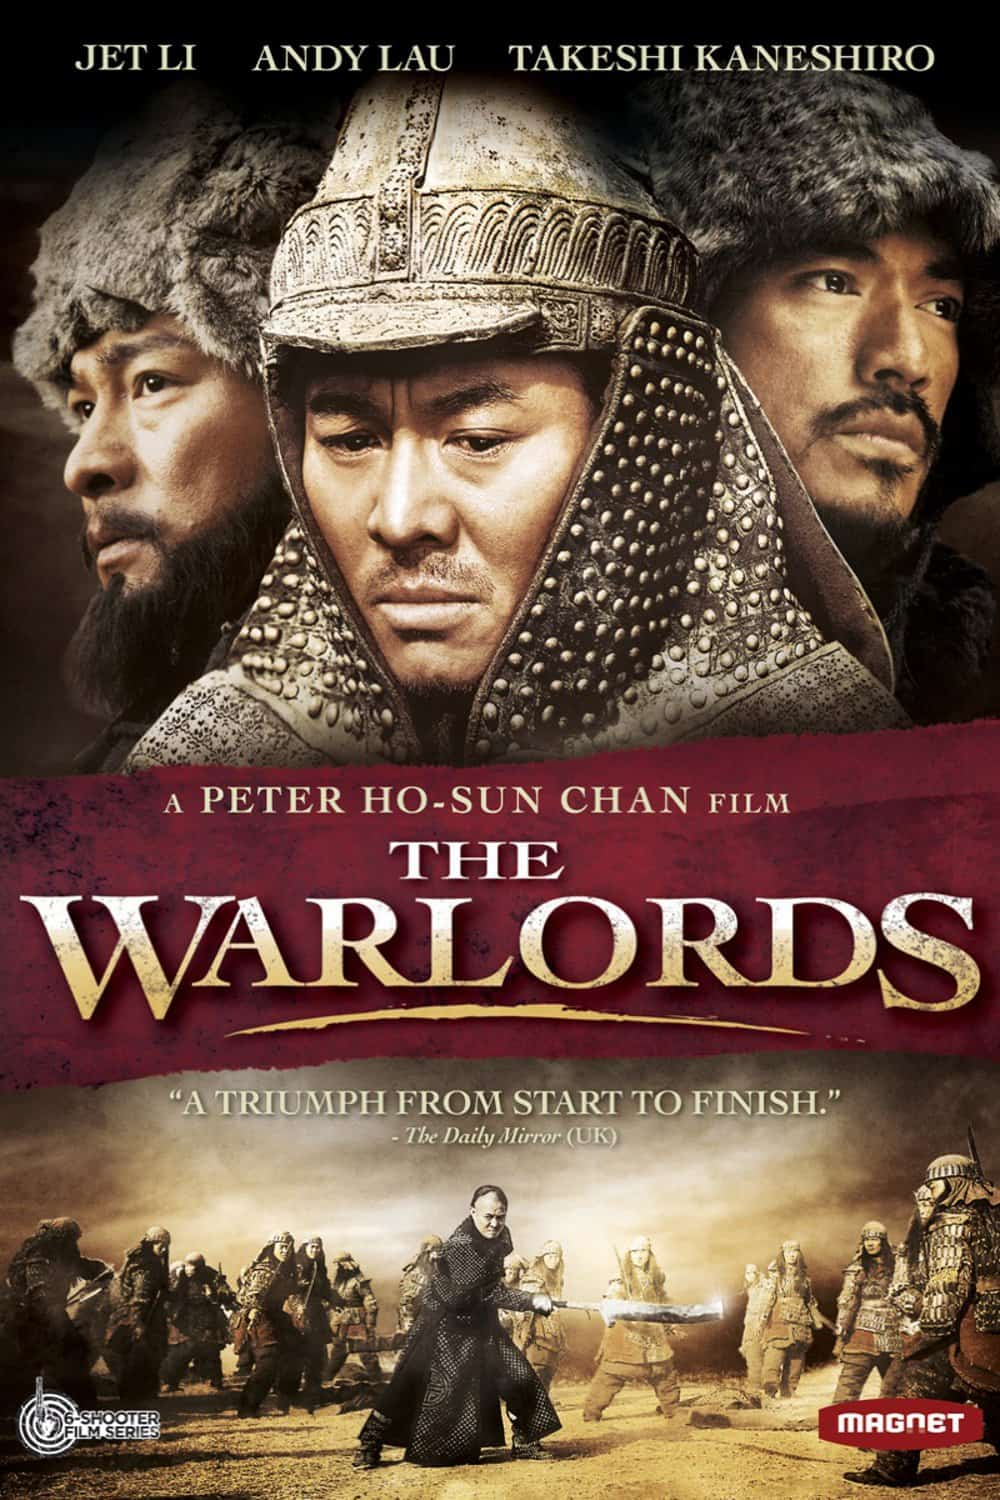 The Warlords, 2007